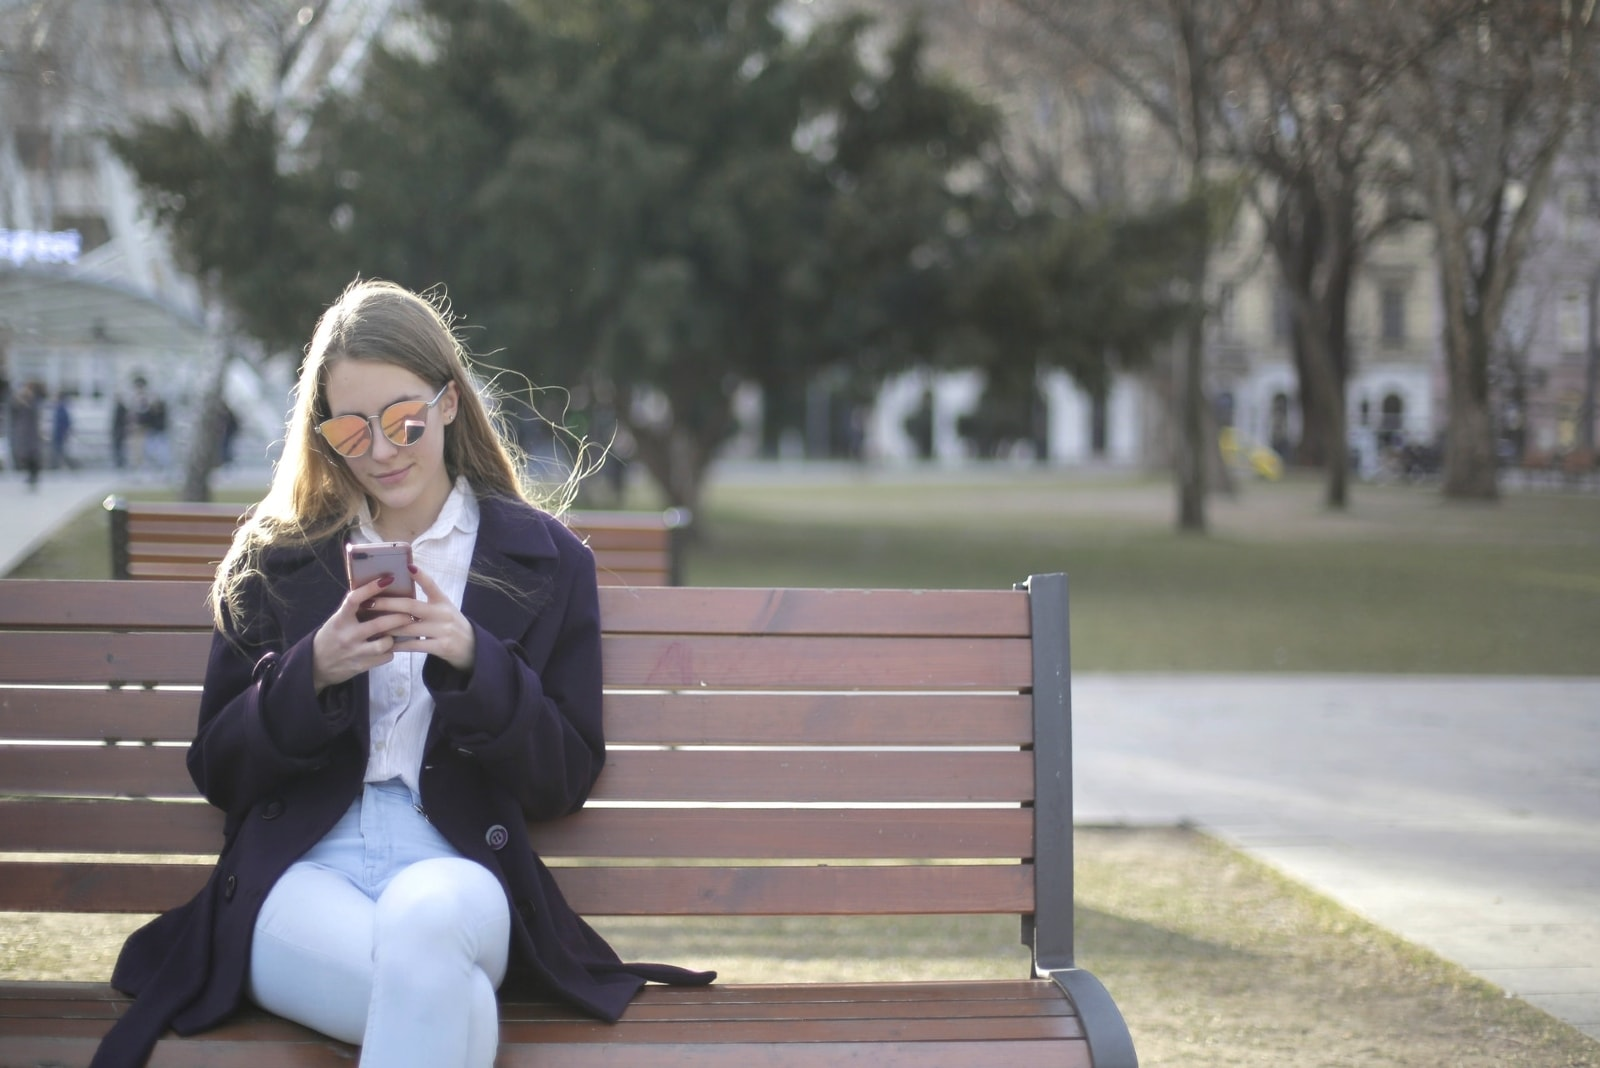 woman with sunglasses using smartphone while sitting on bench